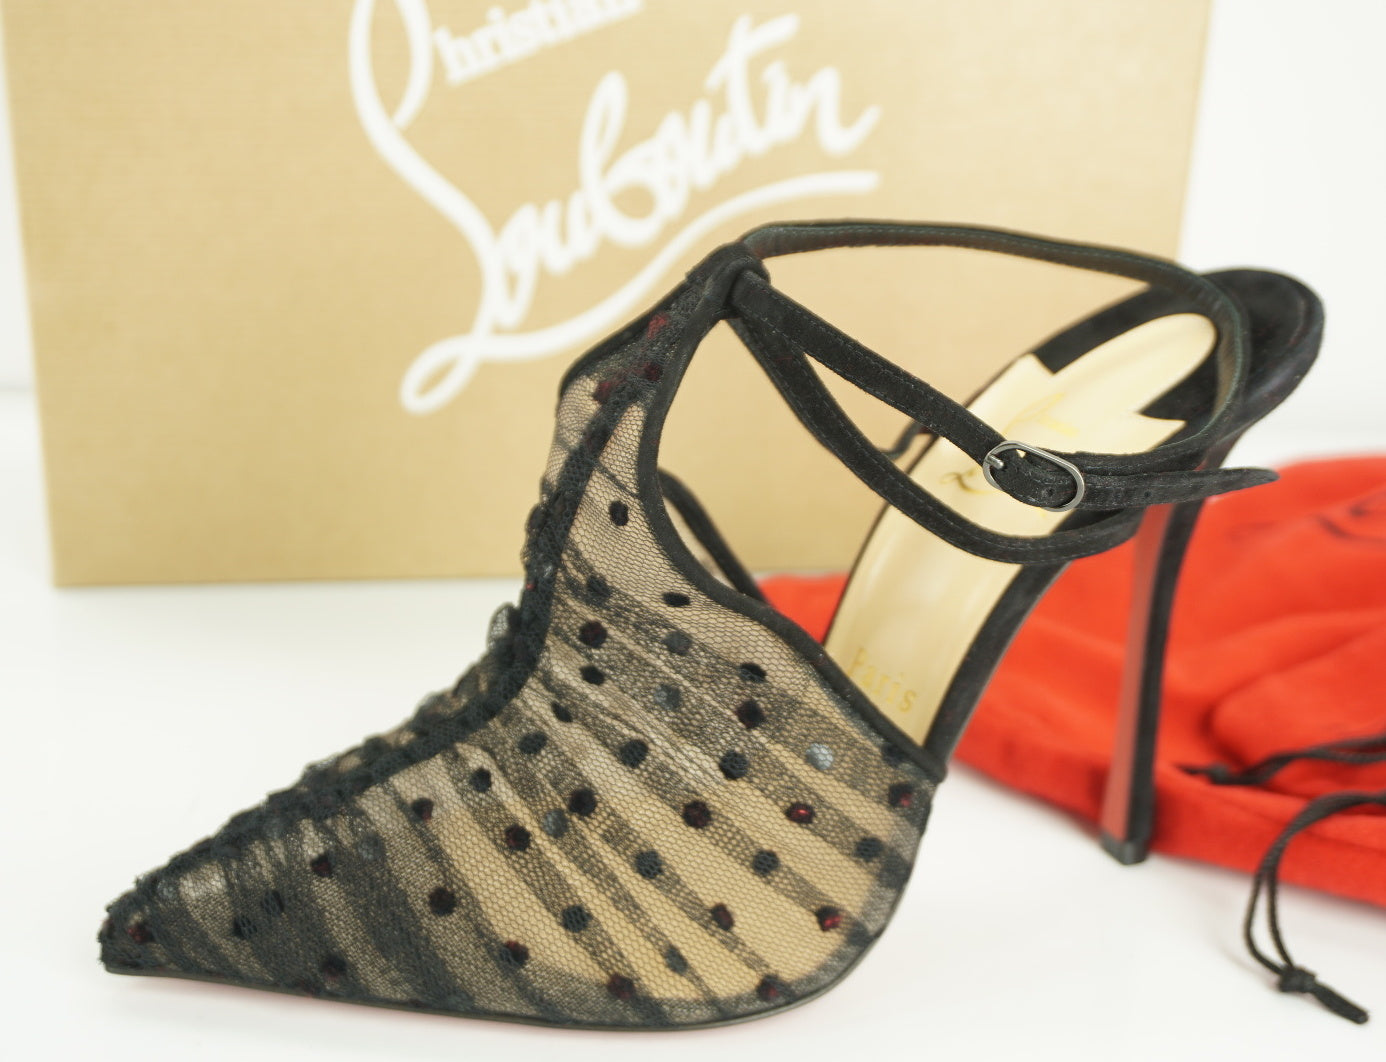 Christian Louboutin Acide Lace Tulle Red Sole Ankle Strap Pump SZ 37.5 NIB $995